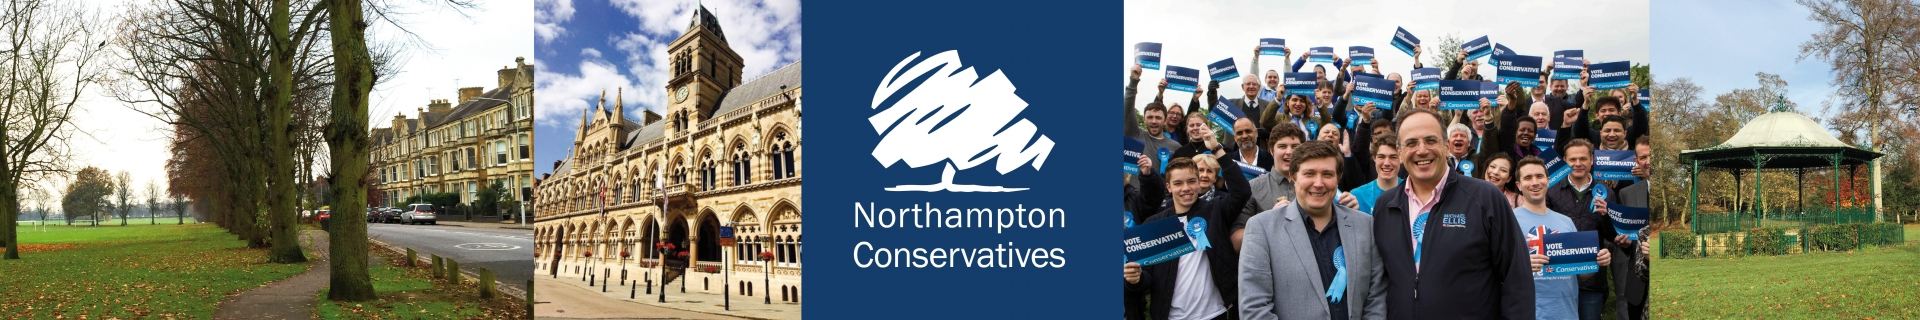 Banner image for Northampton